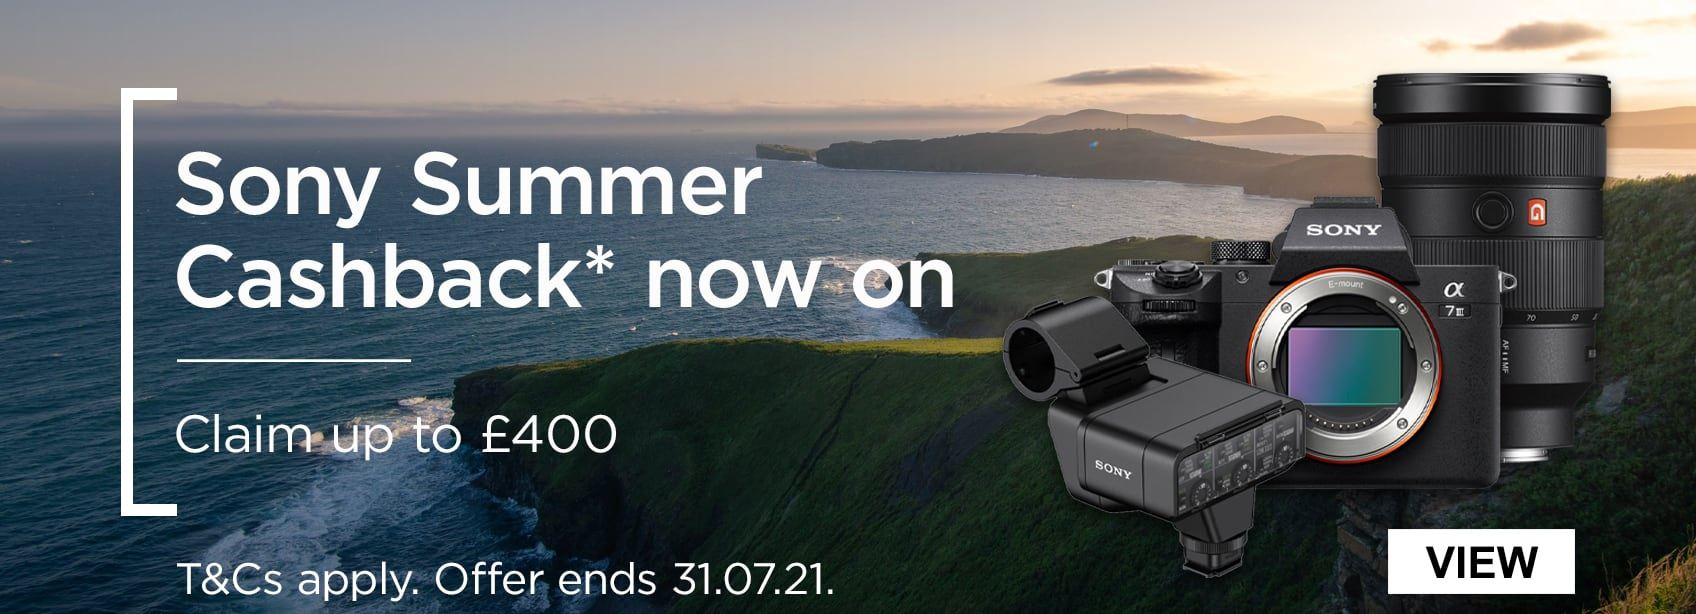 Sony Summer Cashback now on - Claim up to £400